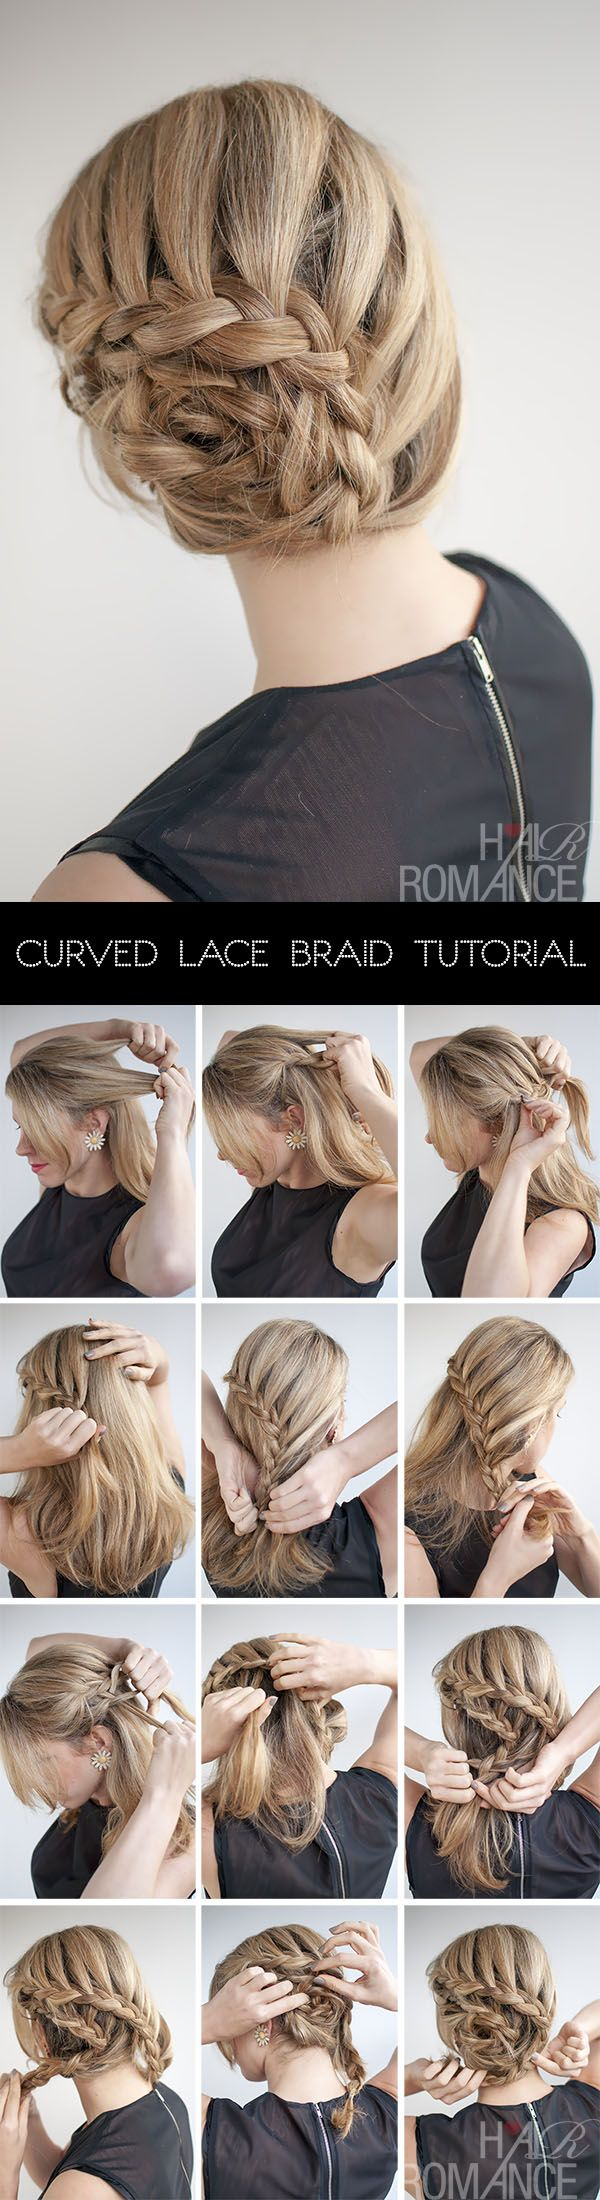 Ladies check out our collection of hair tutorials for all summer